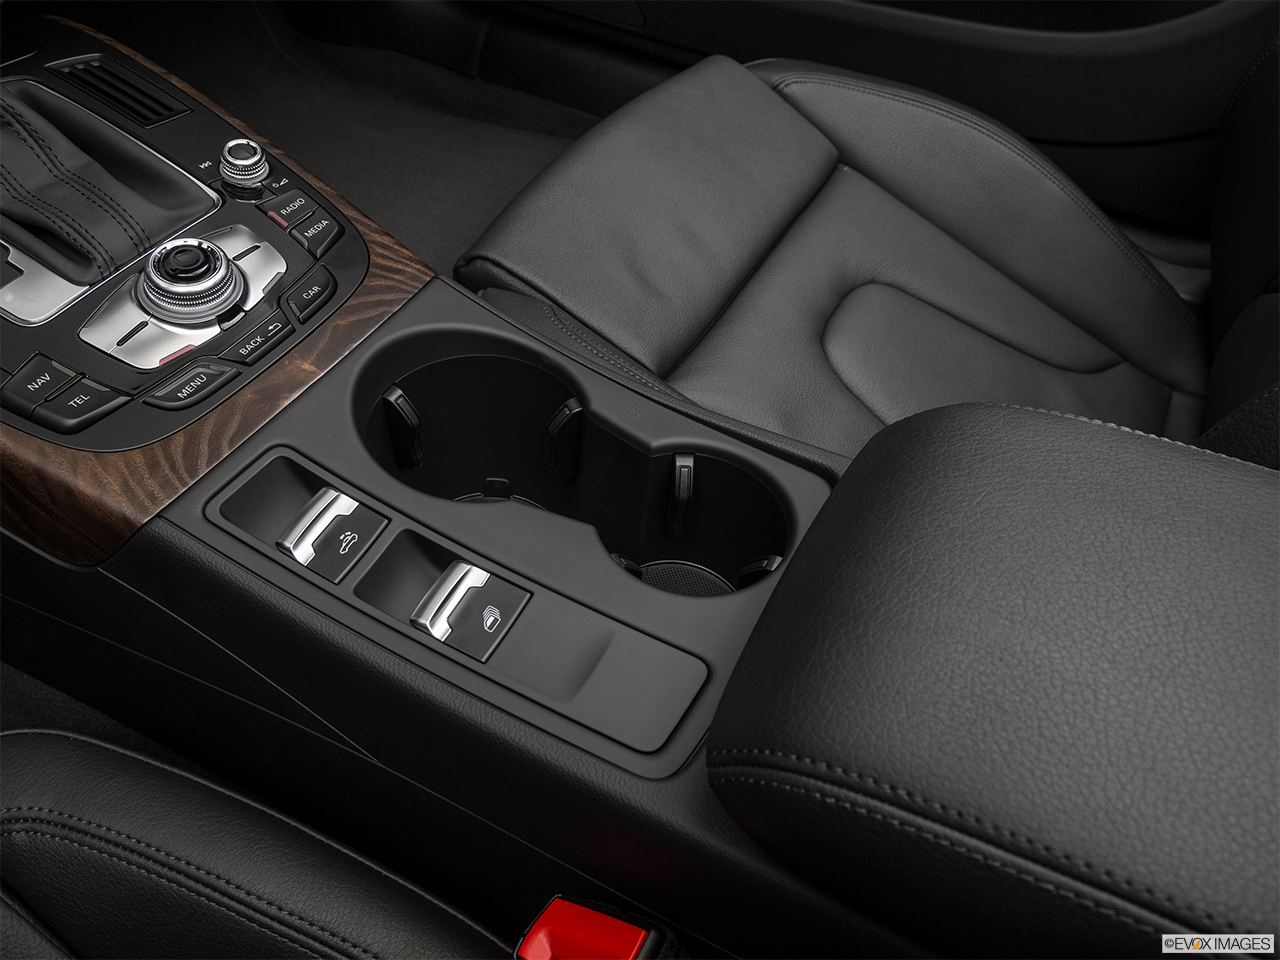 2017 Audi A5 Sport Cabriolet 2.0 TFSI Cup holders.